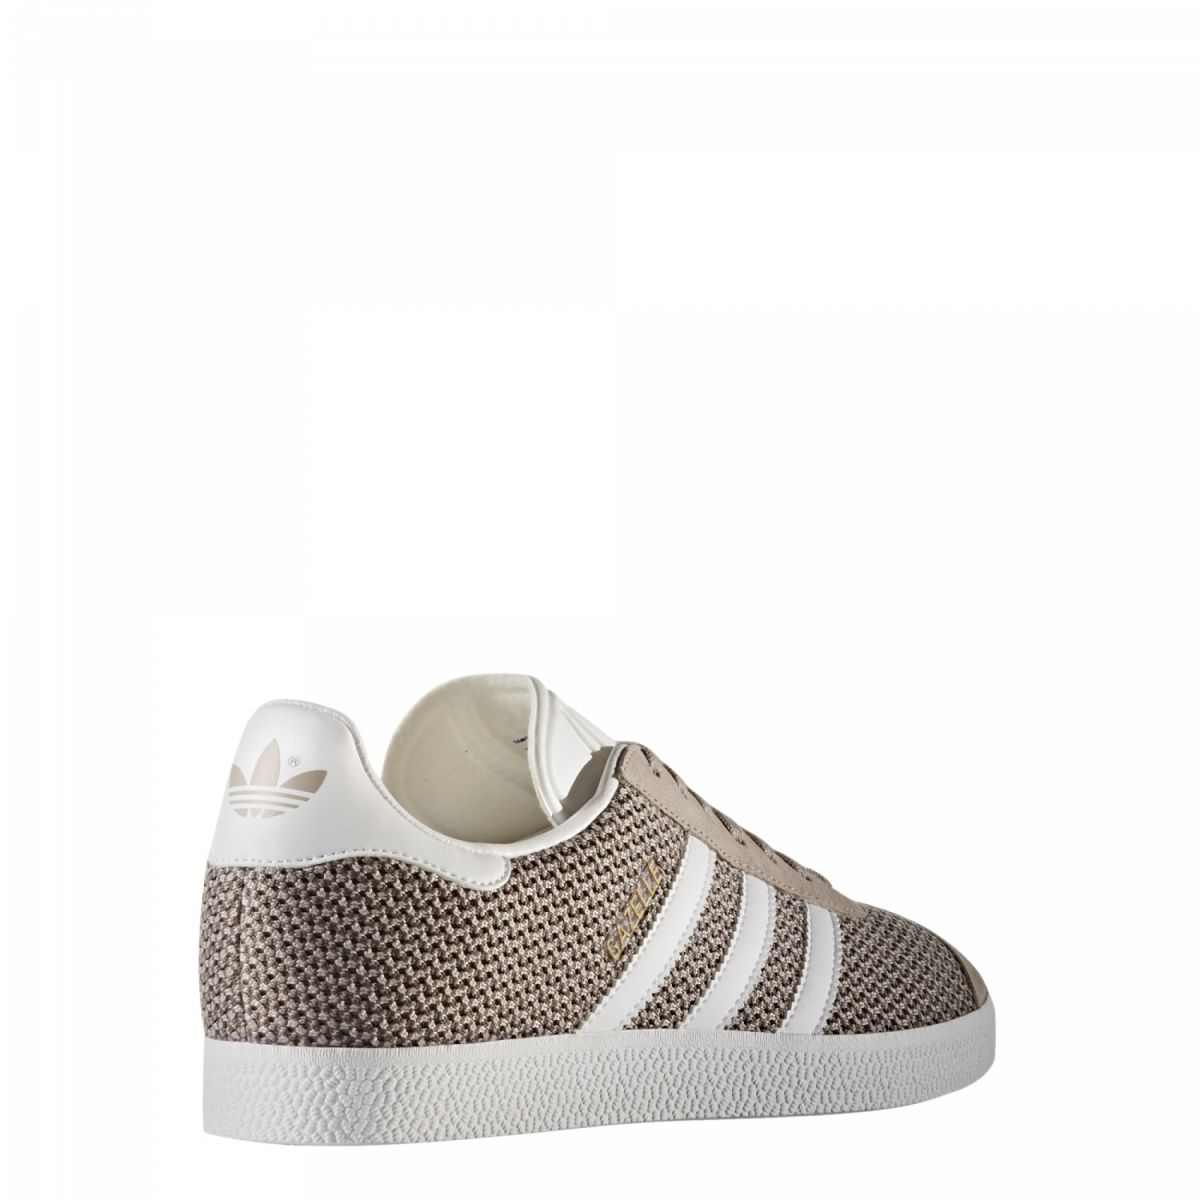 sport klingenmaier adidas originals gazelle sneaker damen schuhe vapour grey online kaufen. Black Bedroom Furniture Sets. Home Design Ideas